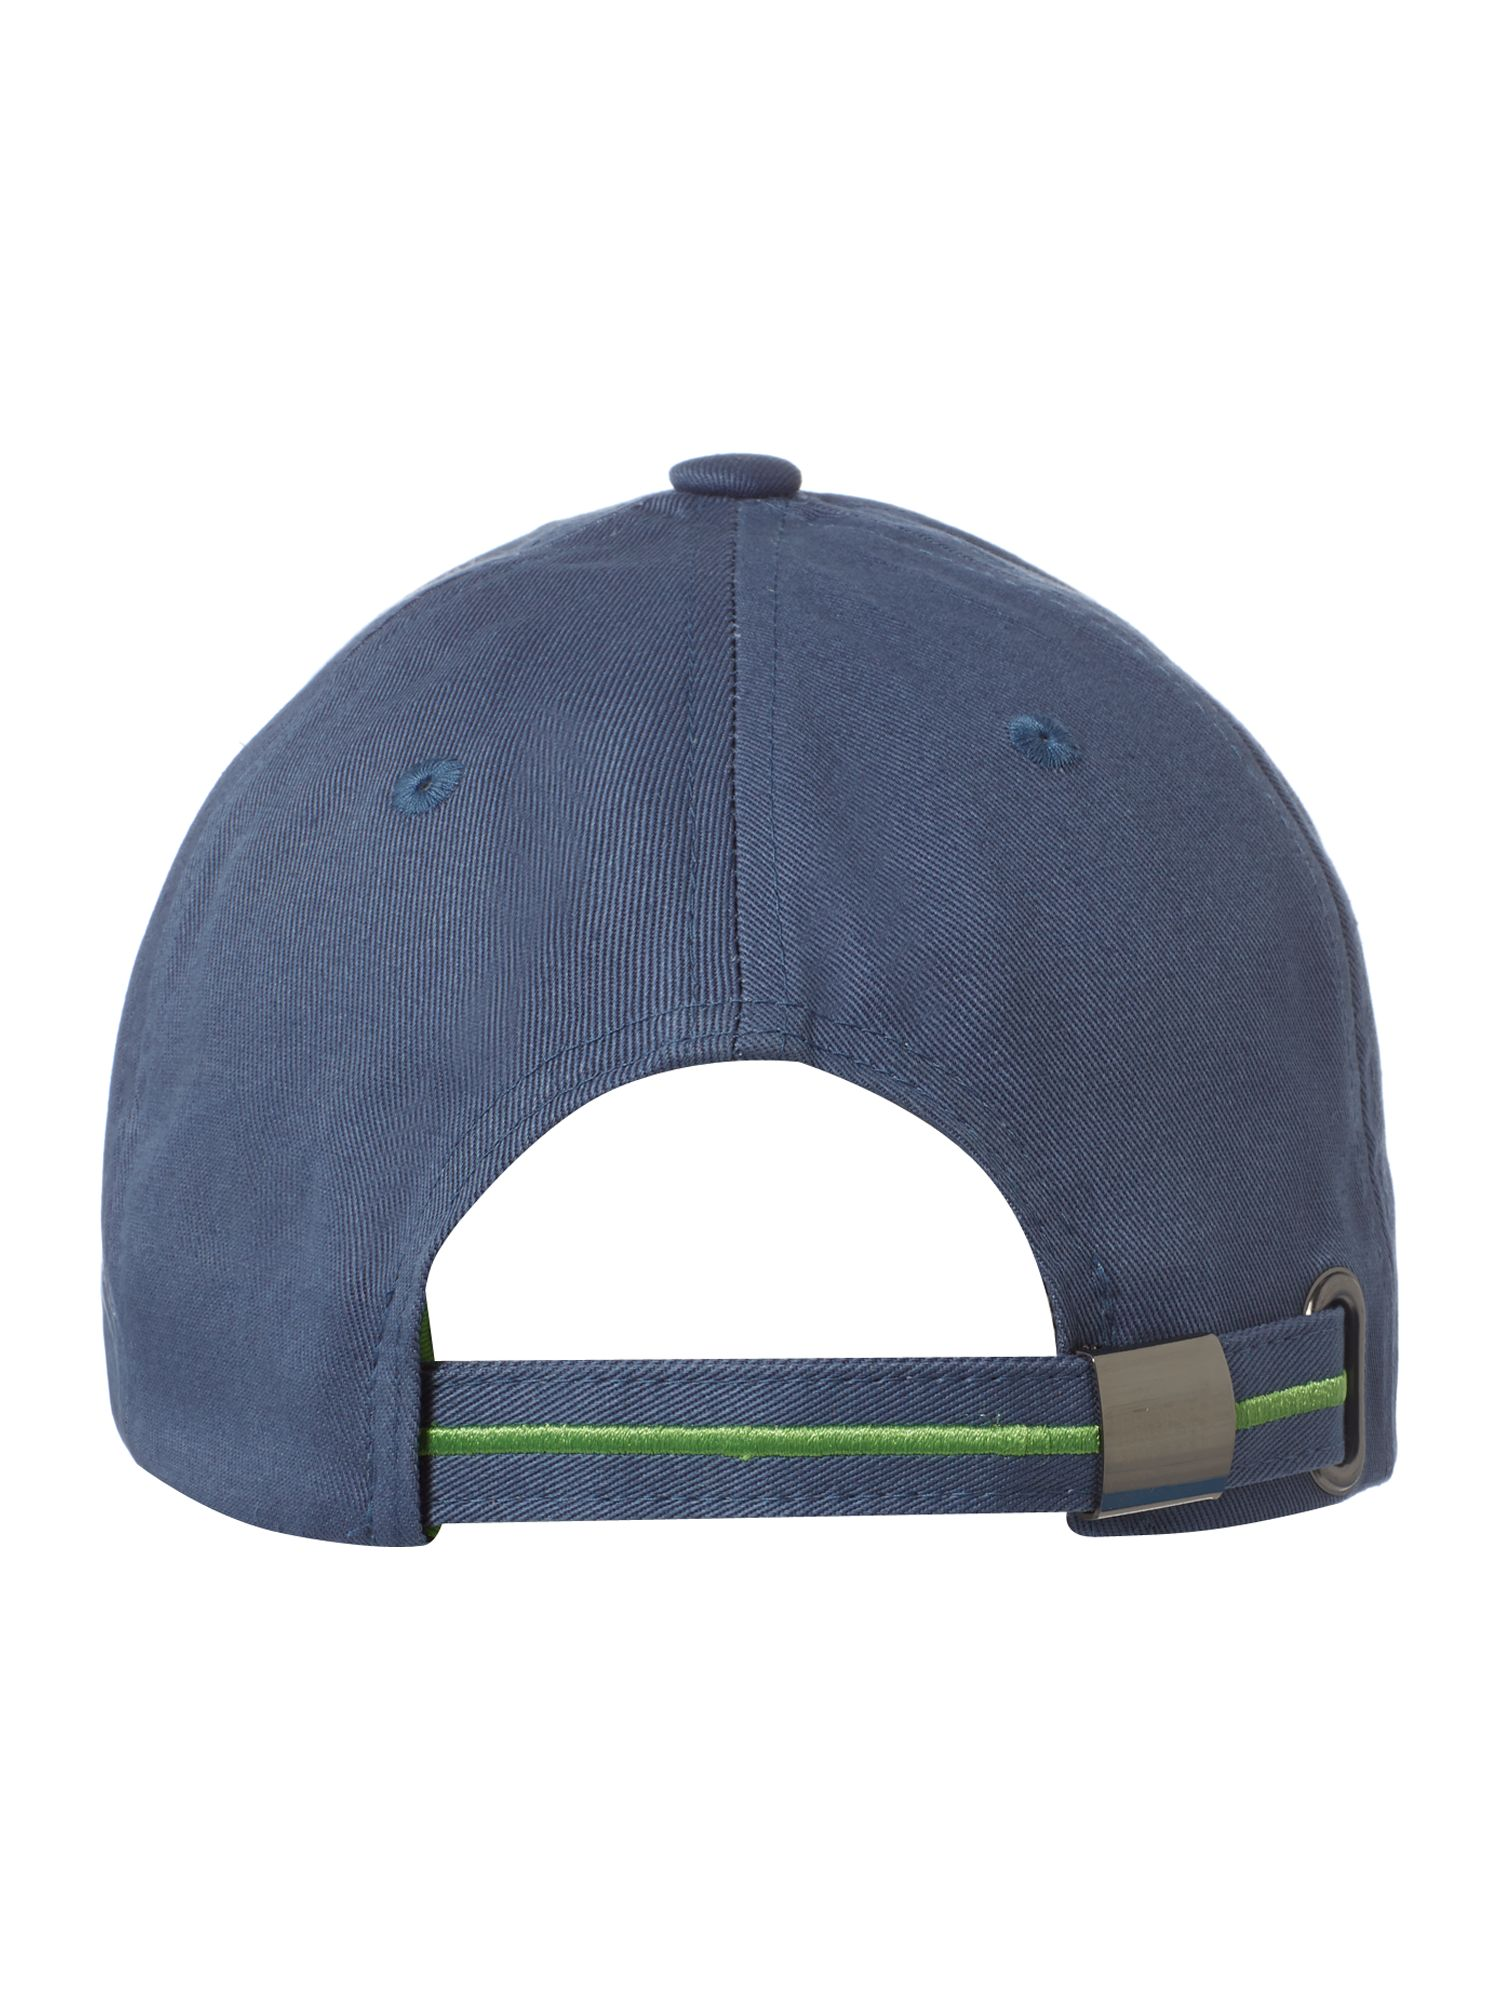 Baseball cap with logo detail